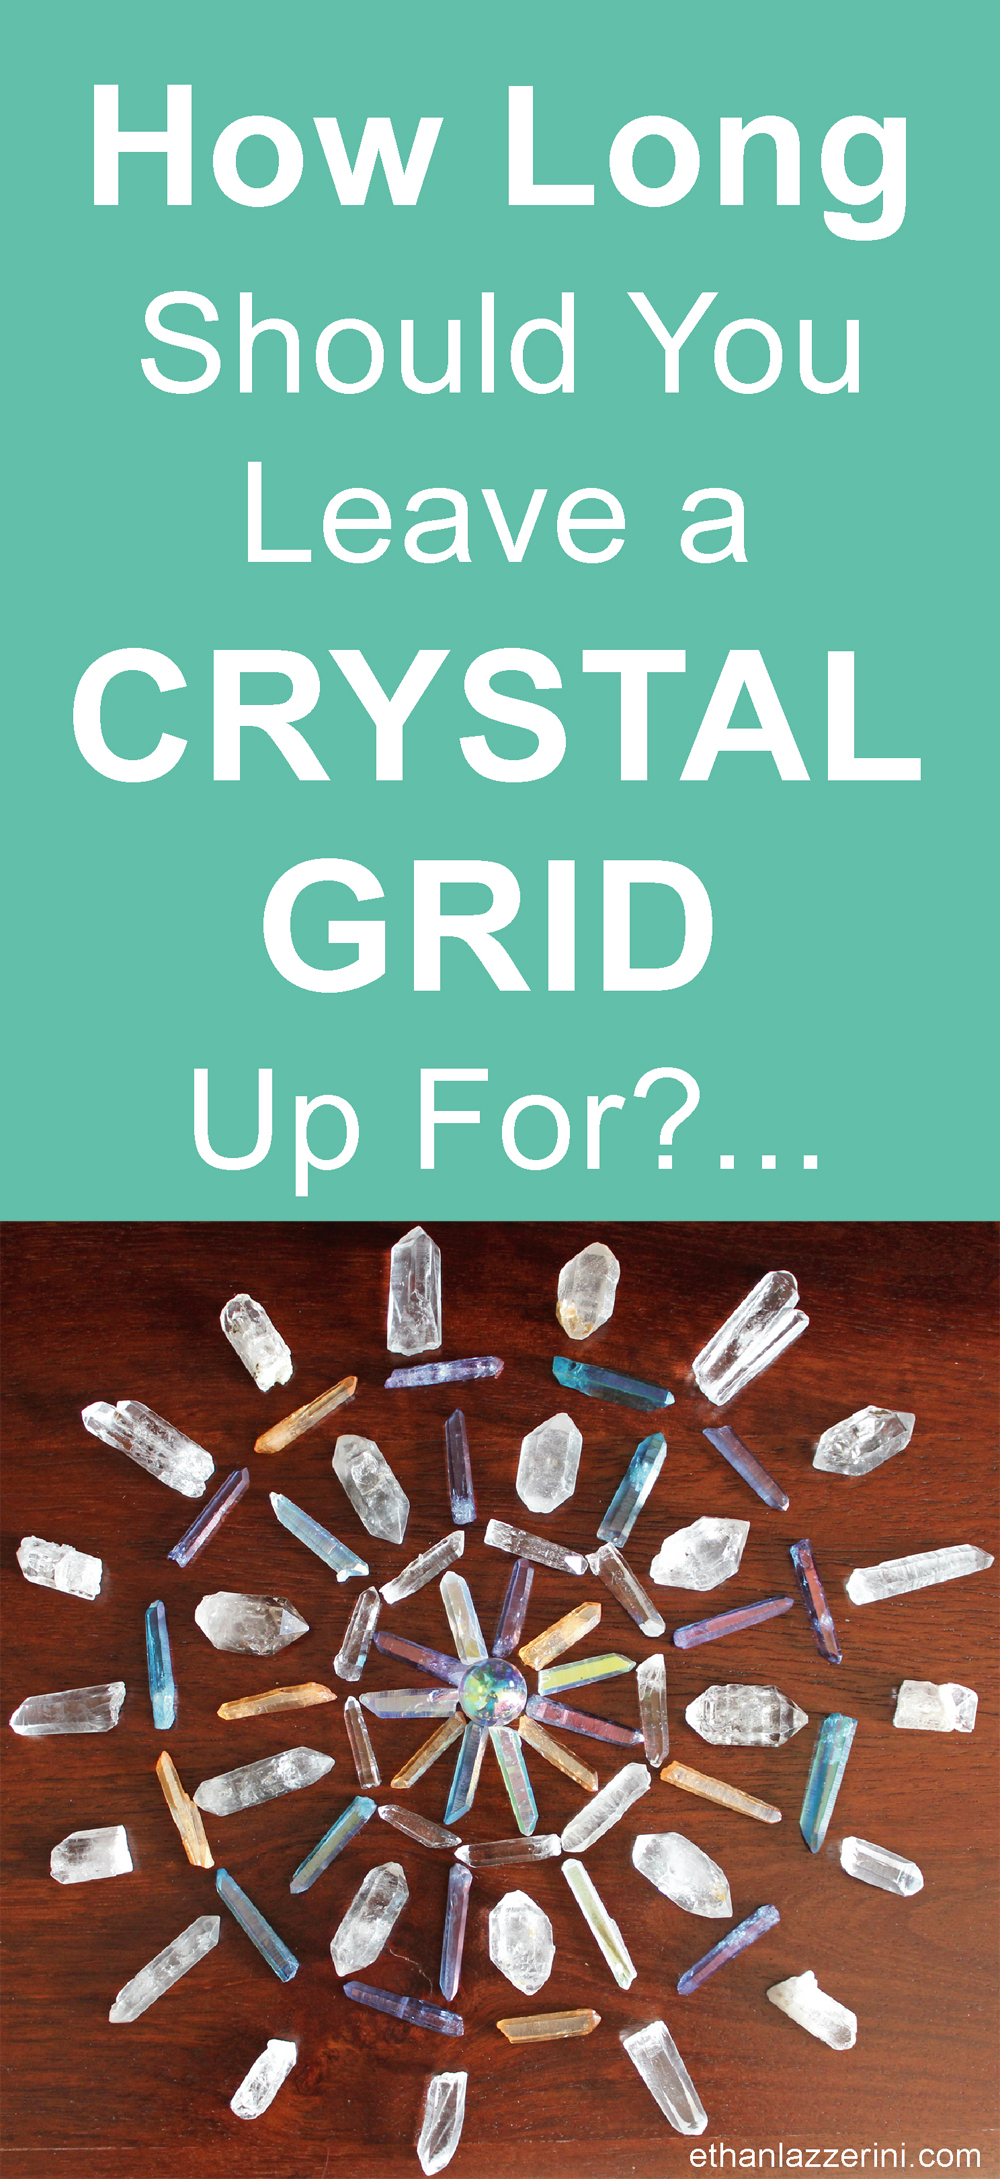 How long should you leave a crystal grid up for?